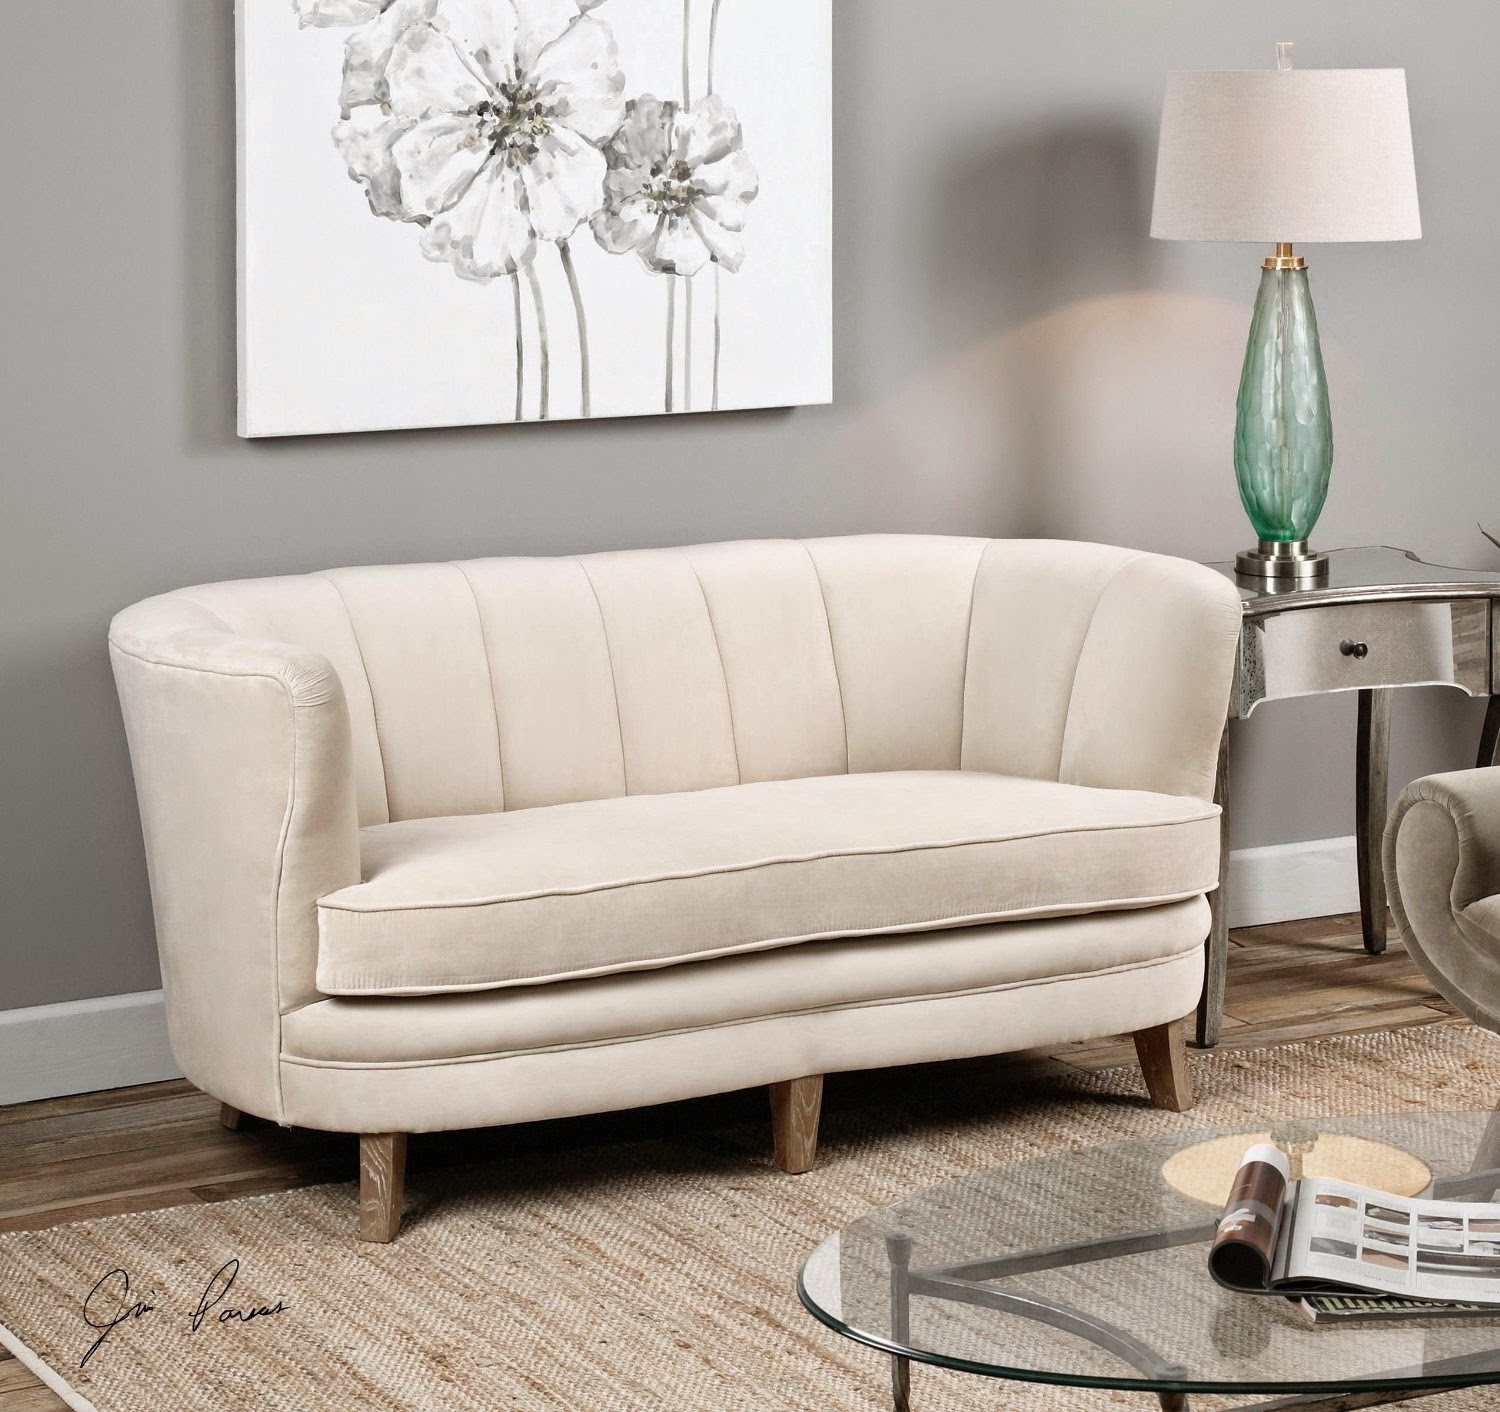 White Curved Sectional Sofa Long With Chaise Bed Round Ikea Ashley